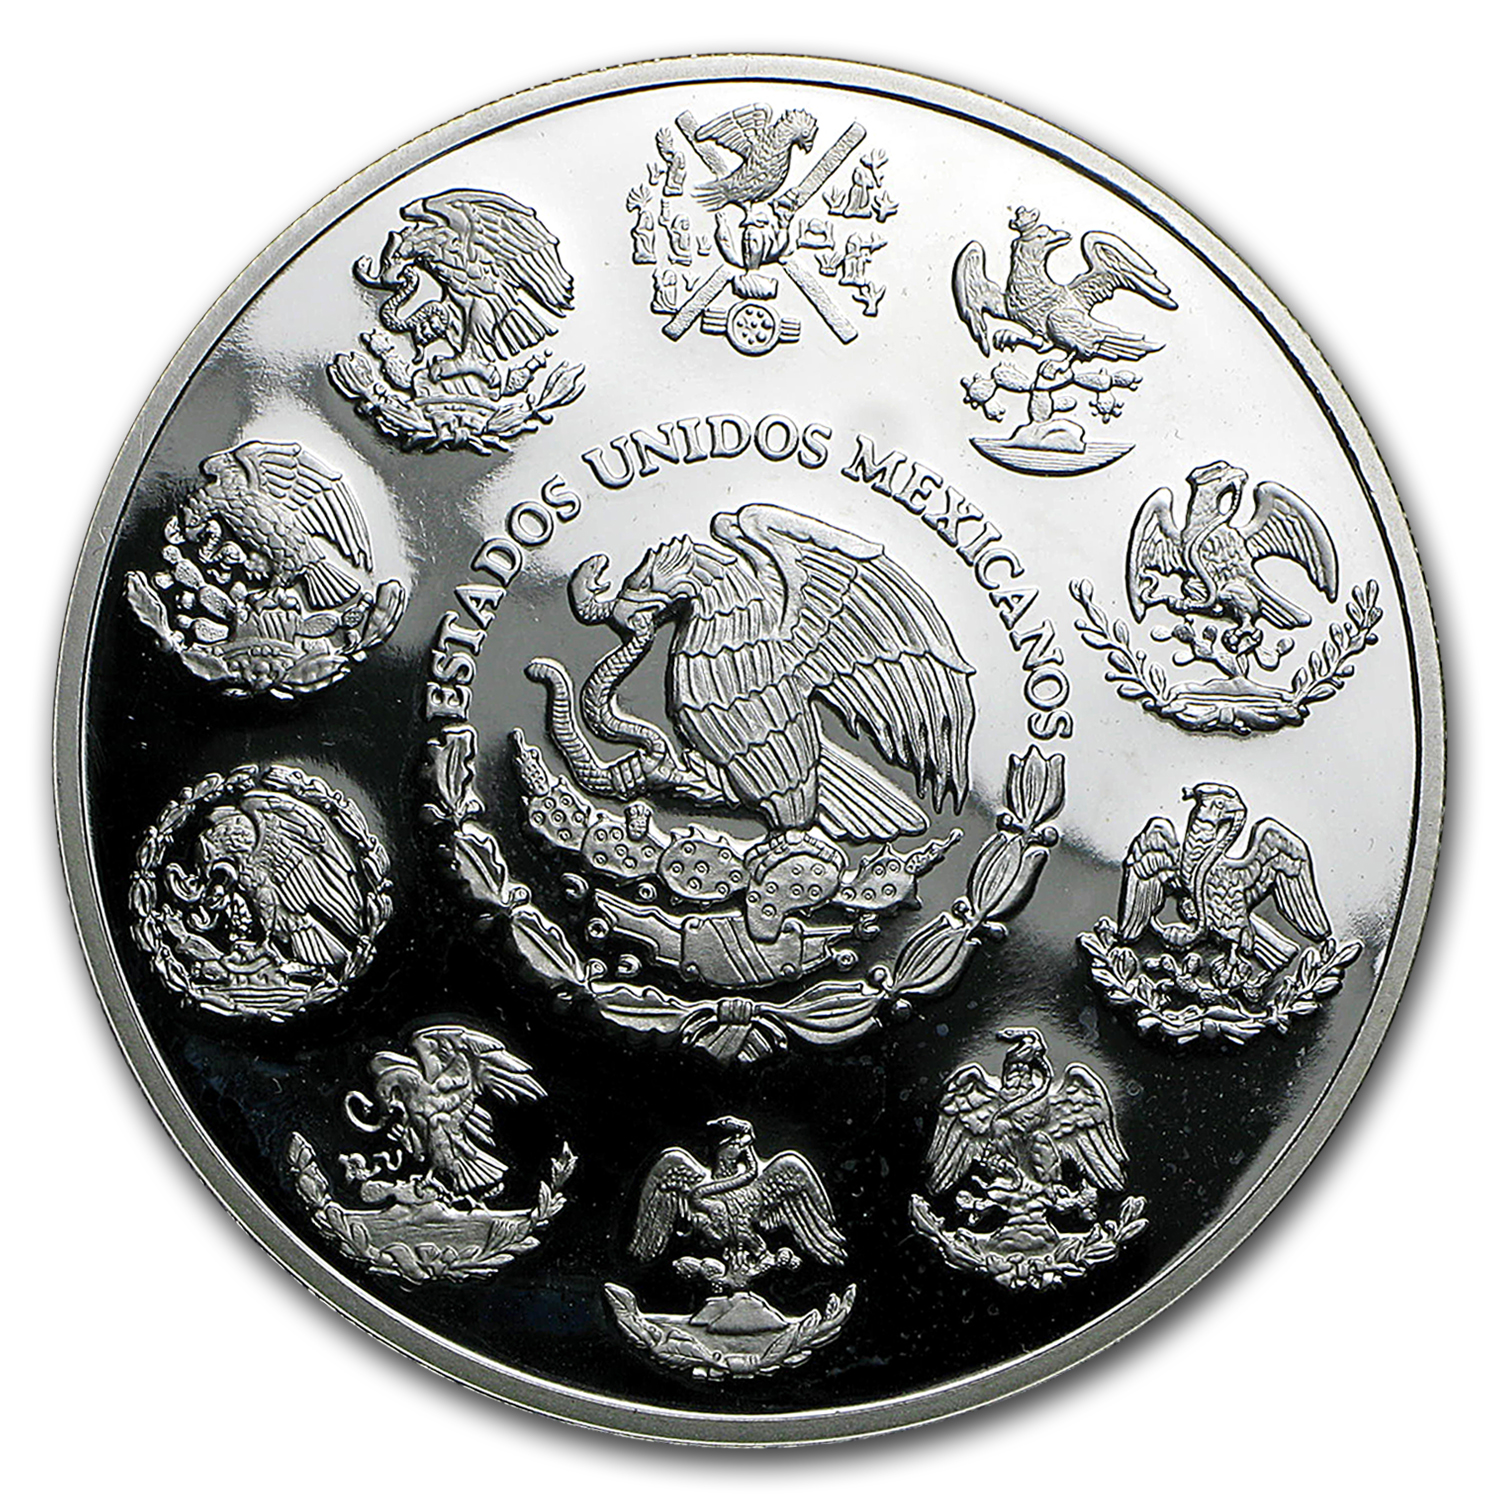 2006 Mexico 2 oz Silver Libertad Proof (In Capsule)